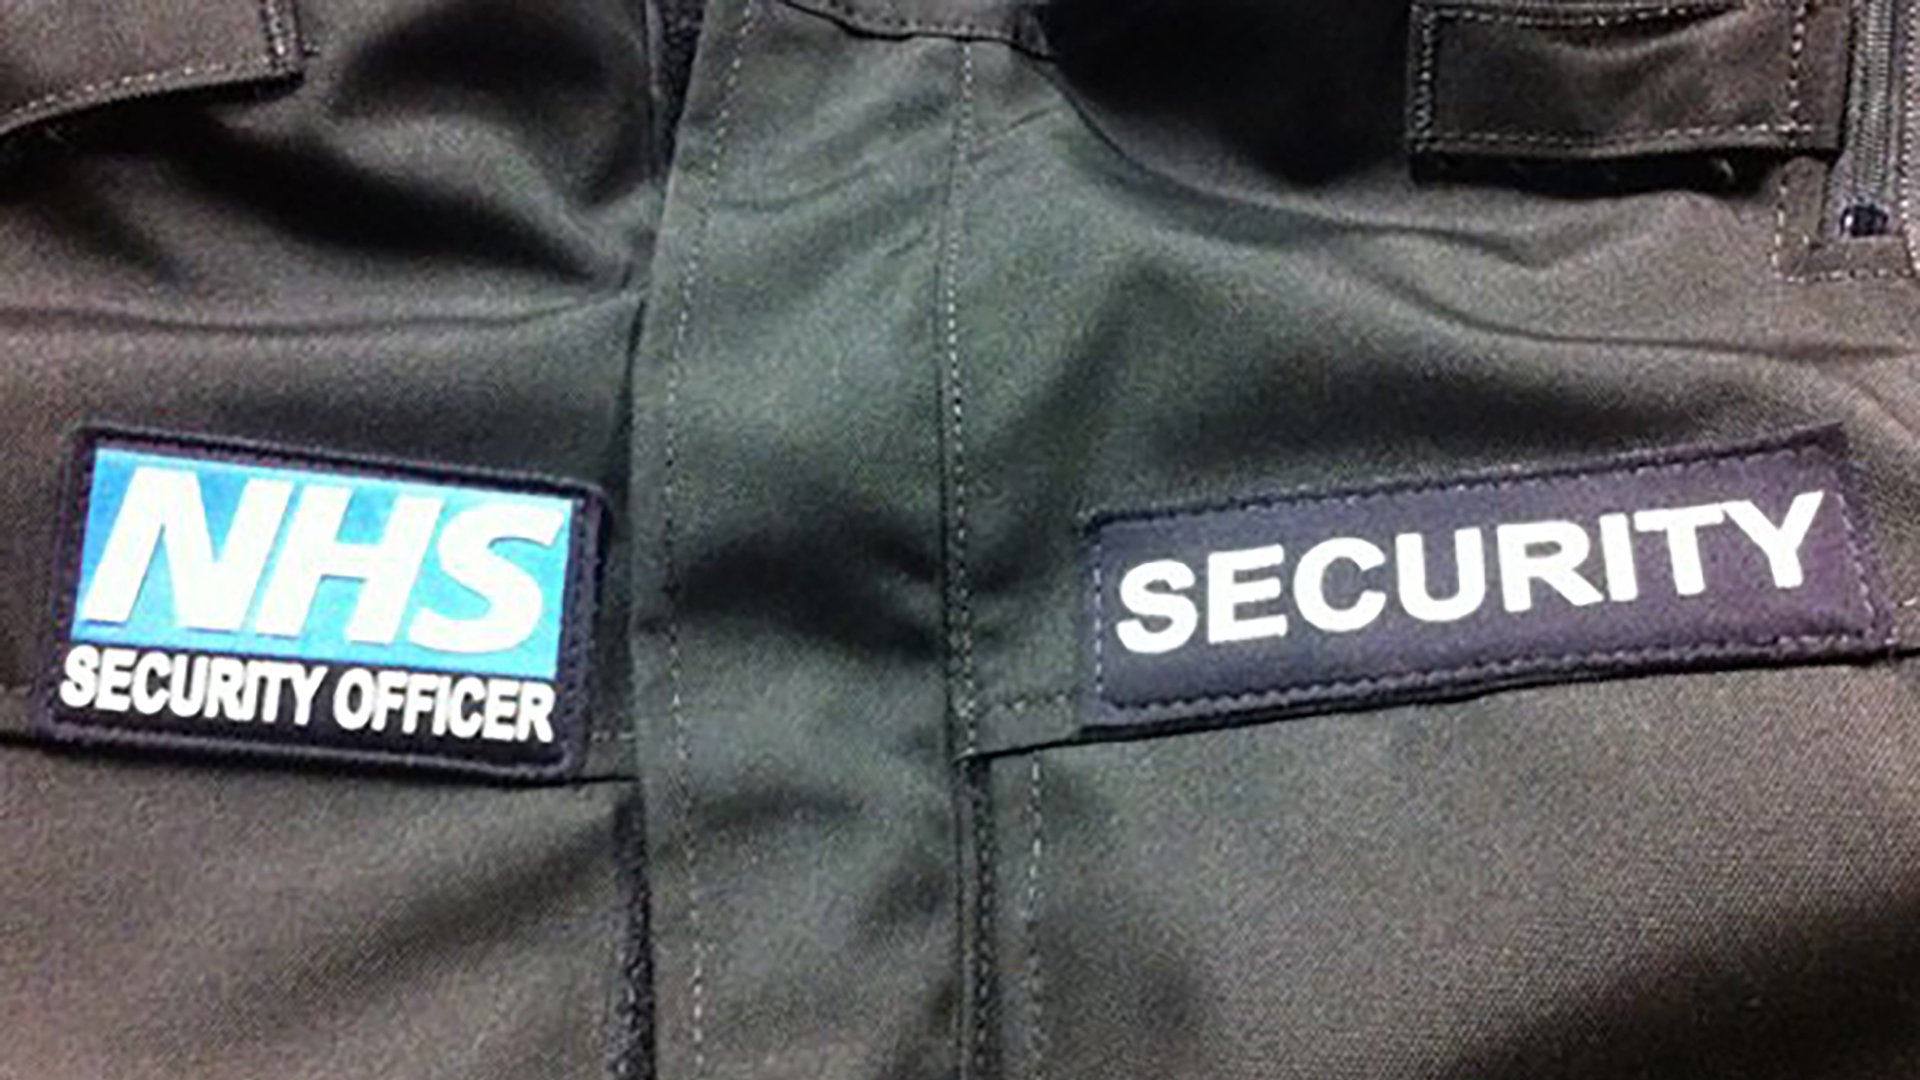 NHS Security Officer Training